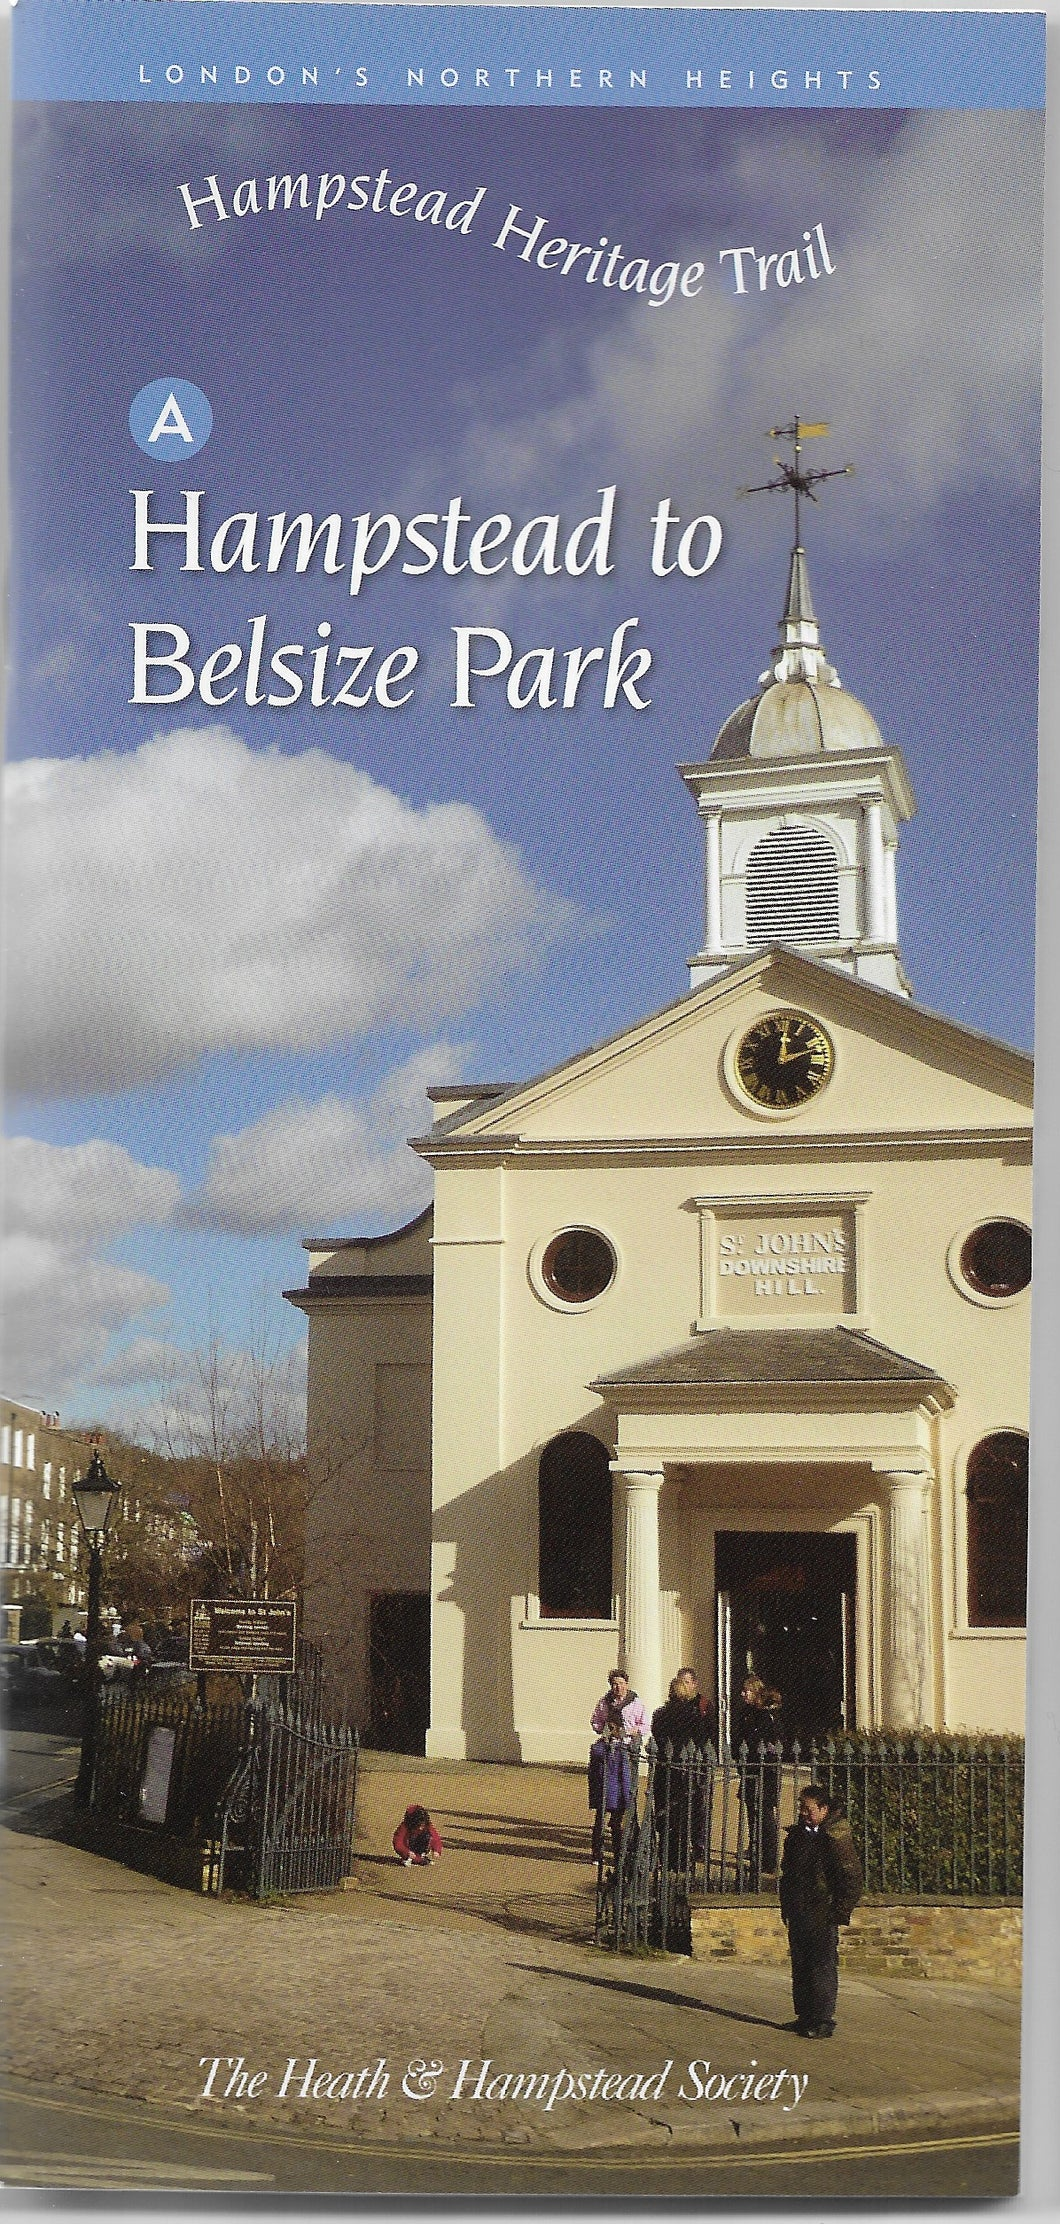 Guide - (A) Hampstead to Belsize Park